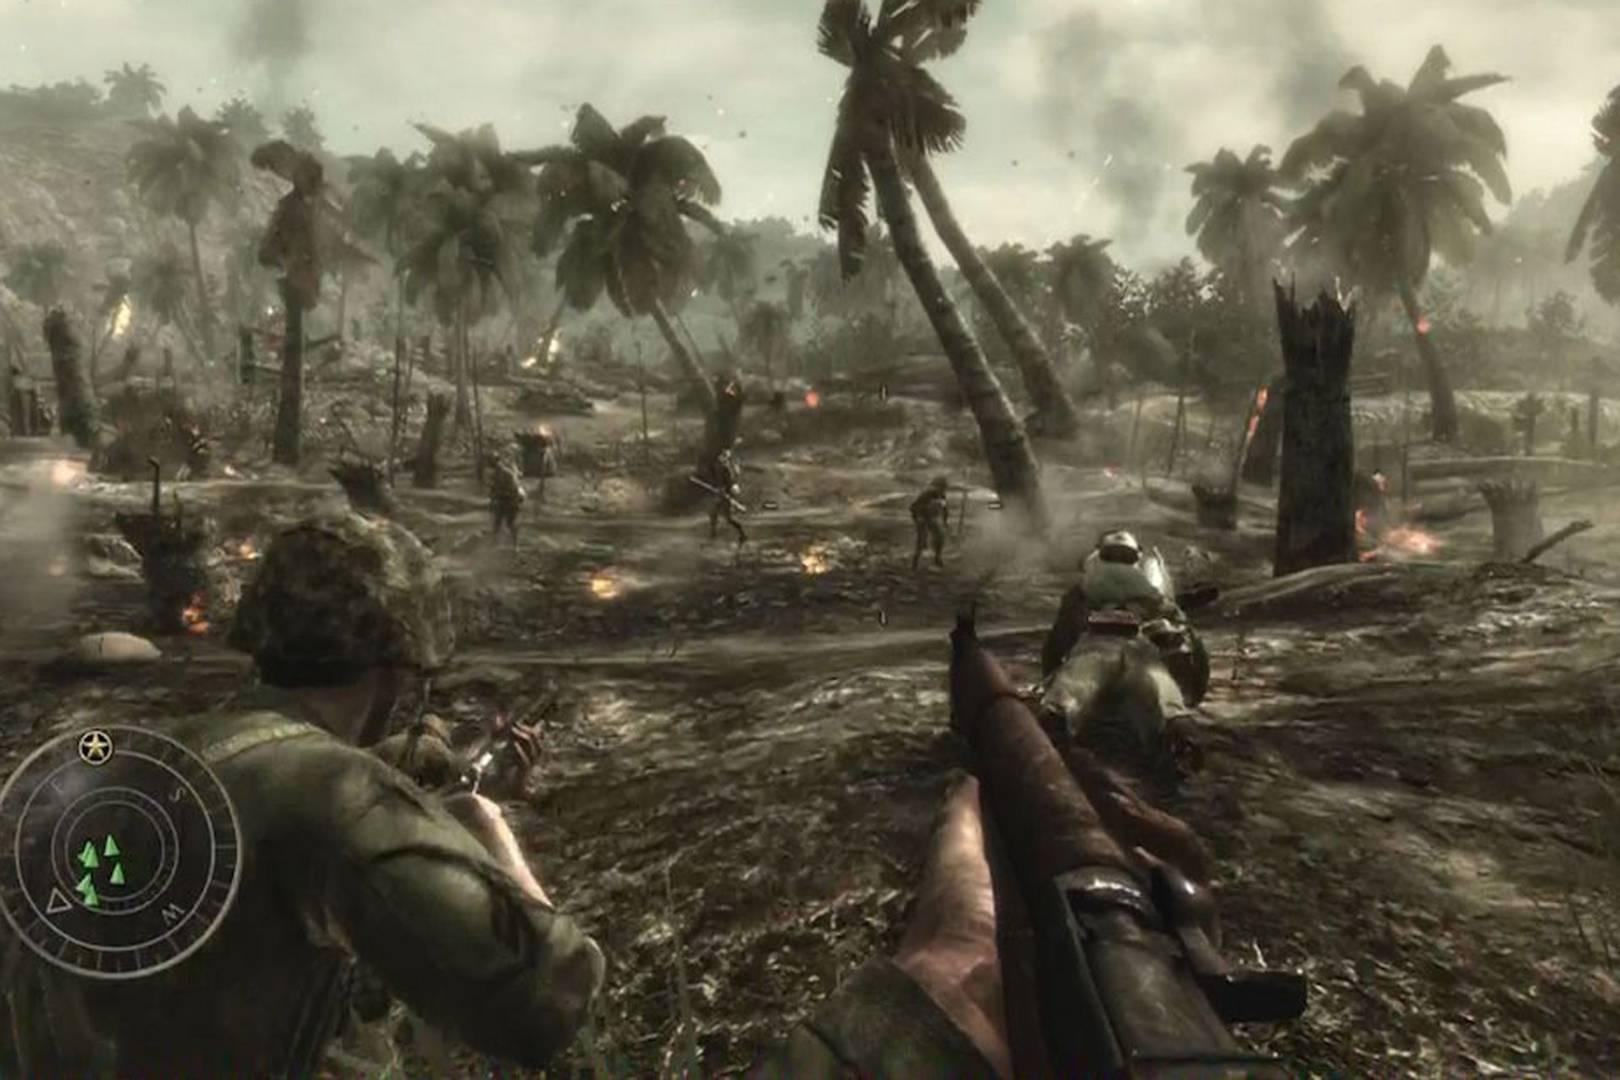 call of duty 1 free download ocean of games